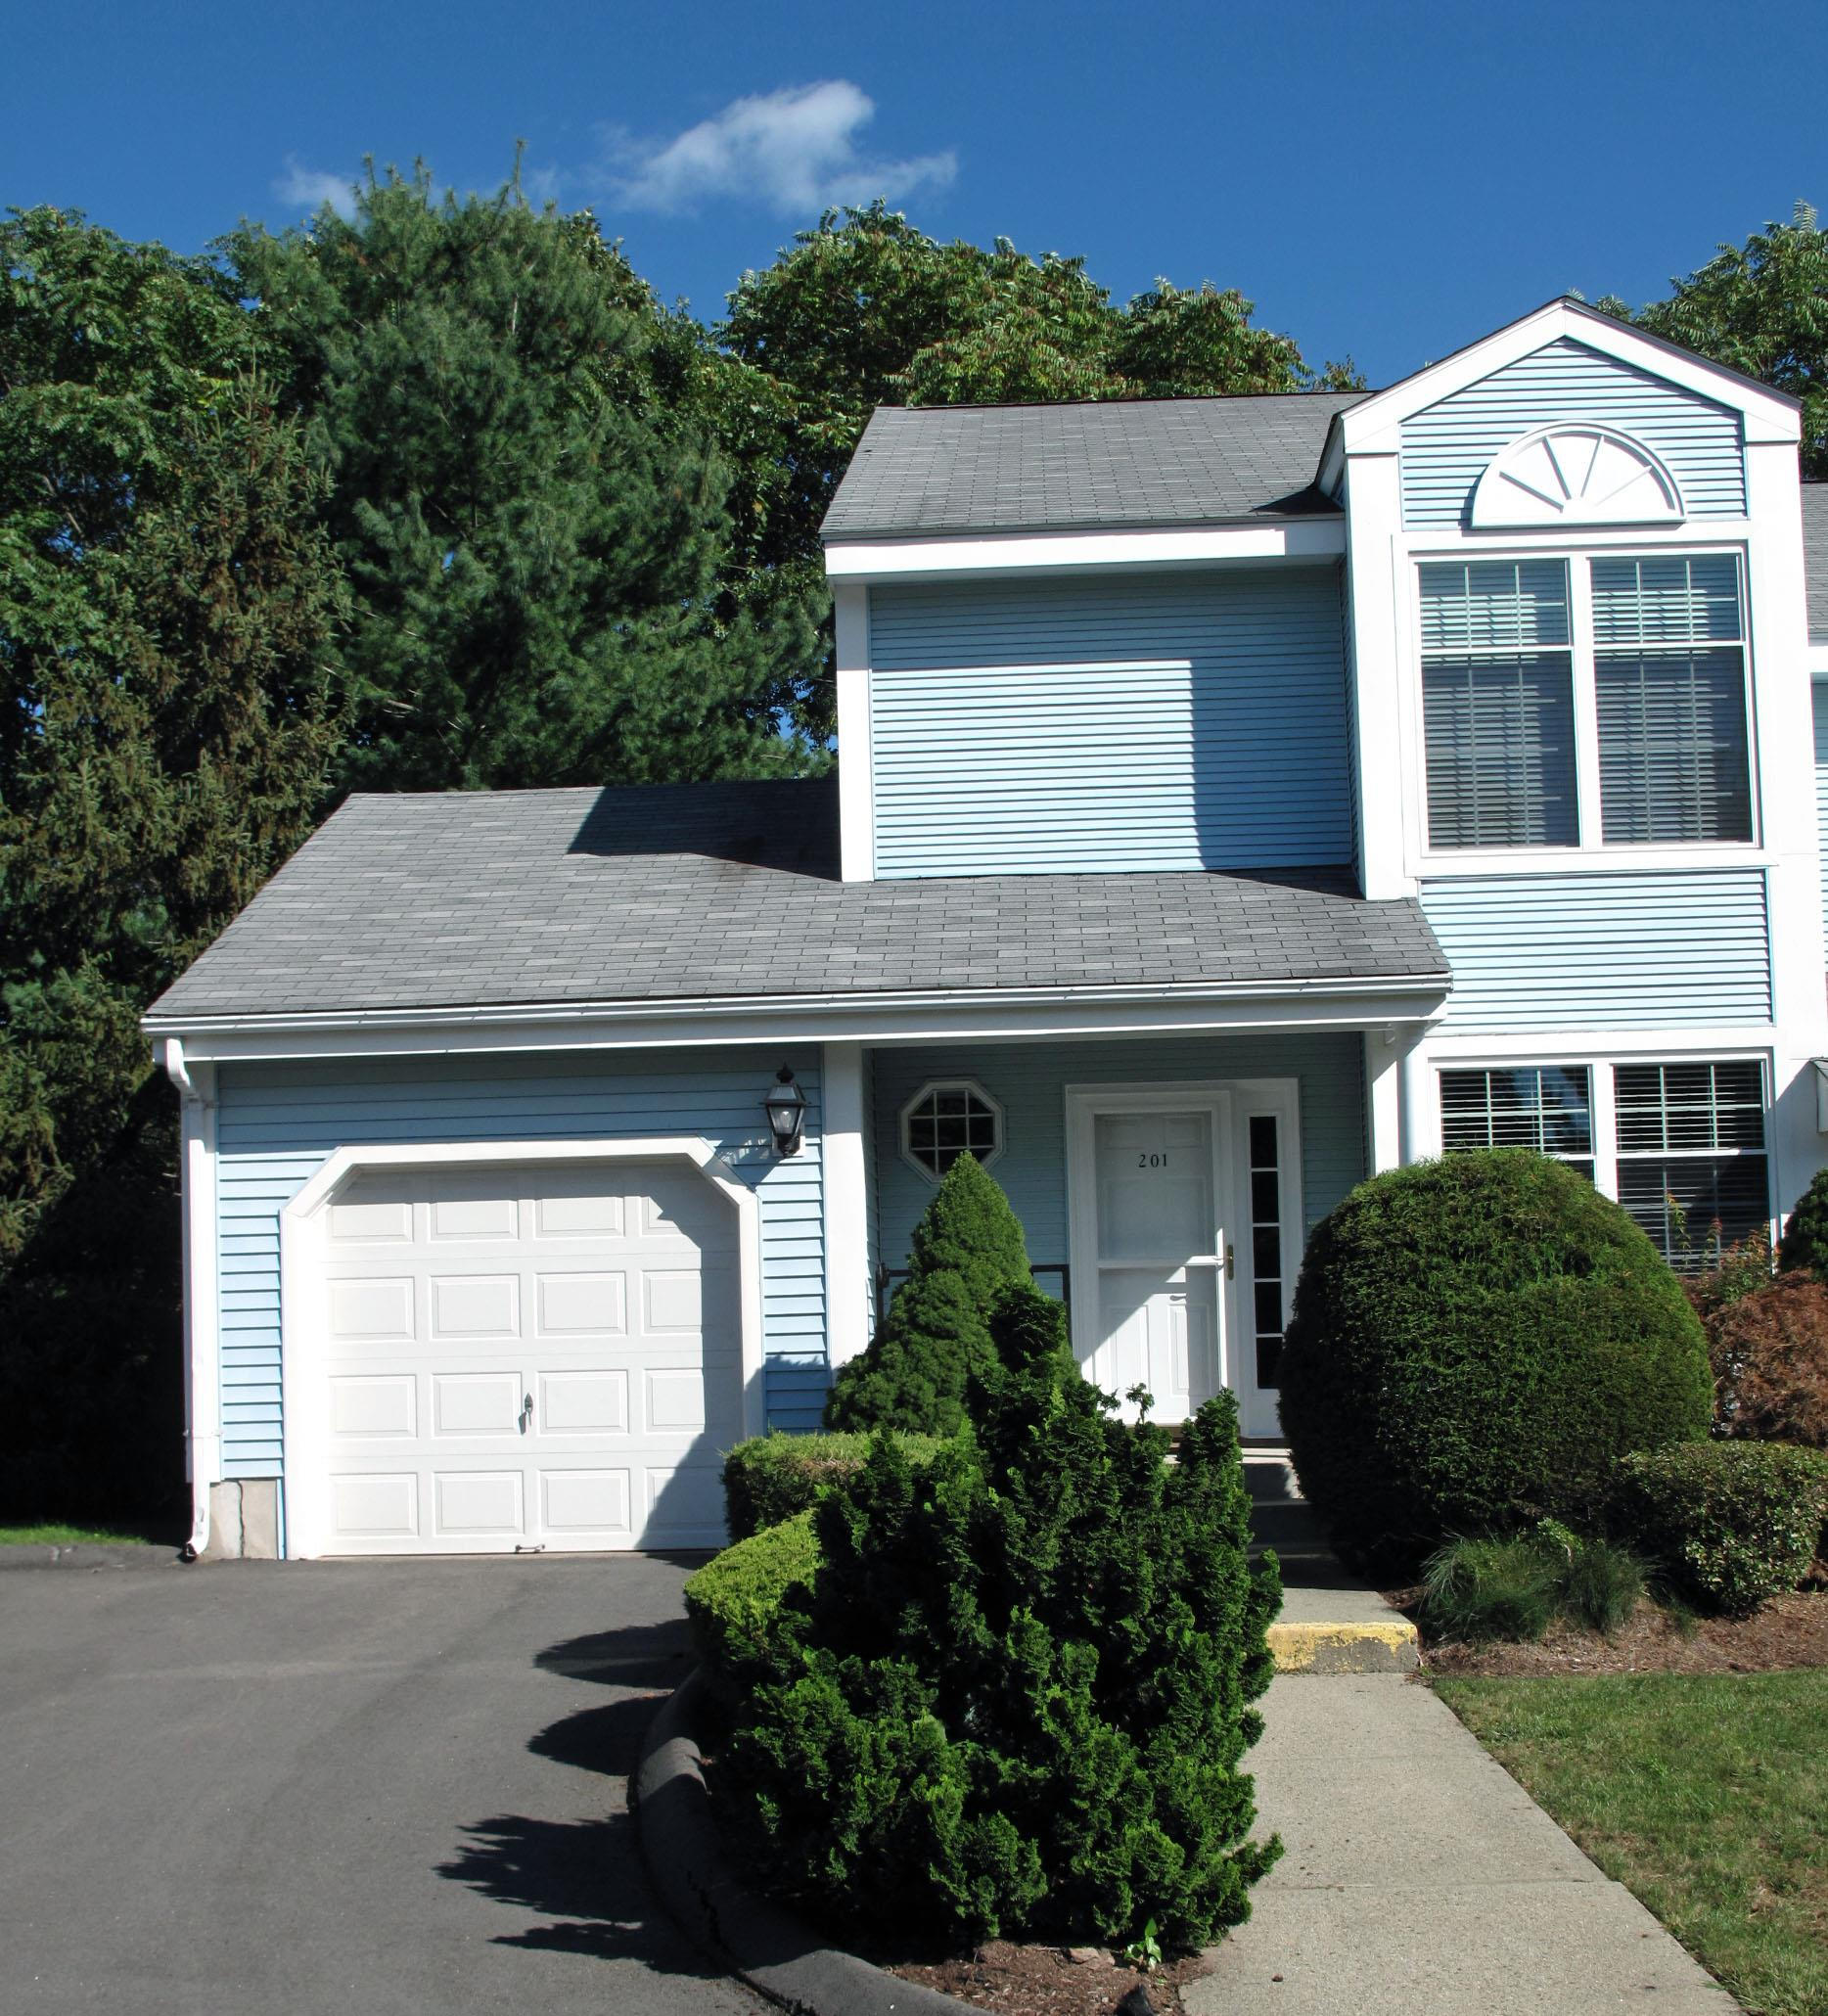 Lisa Giller Realtor sells real estate in Rocky Hill CT